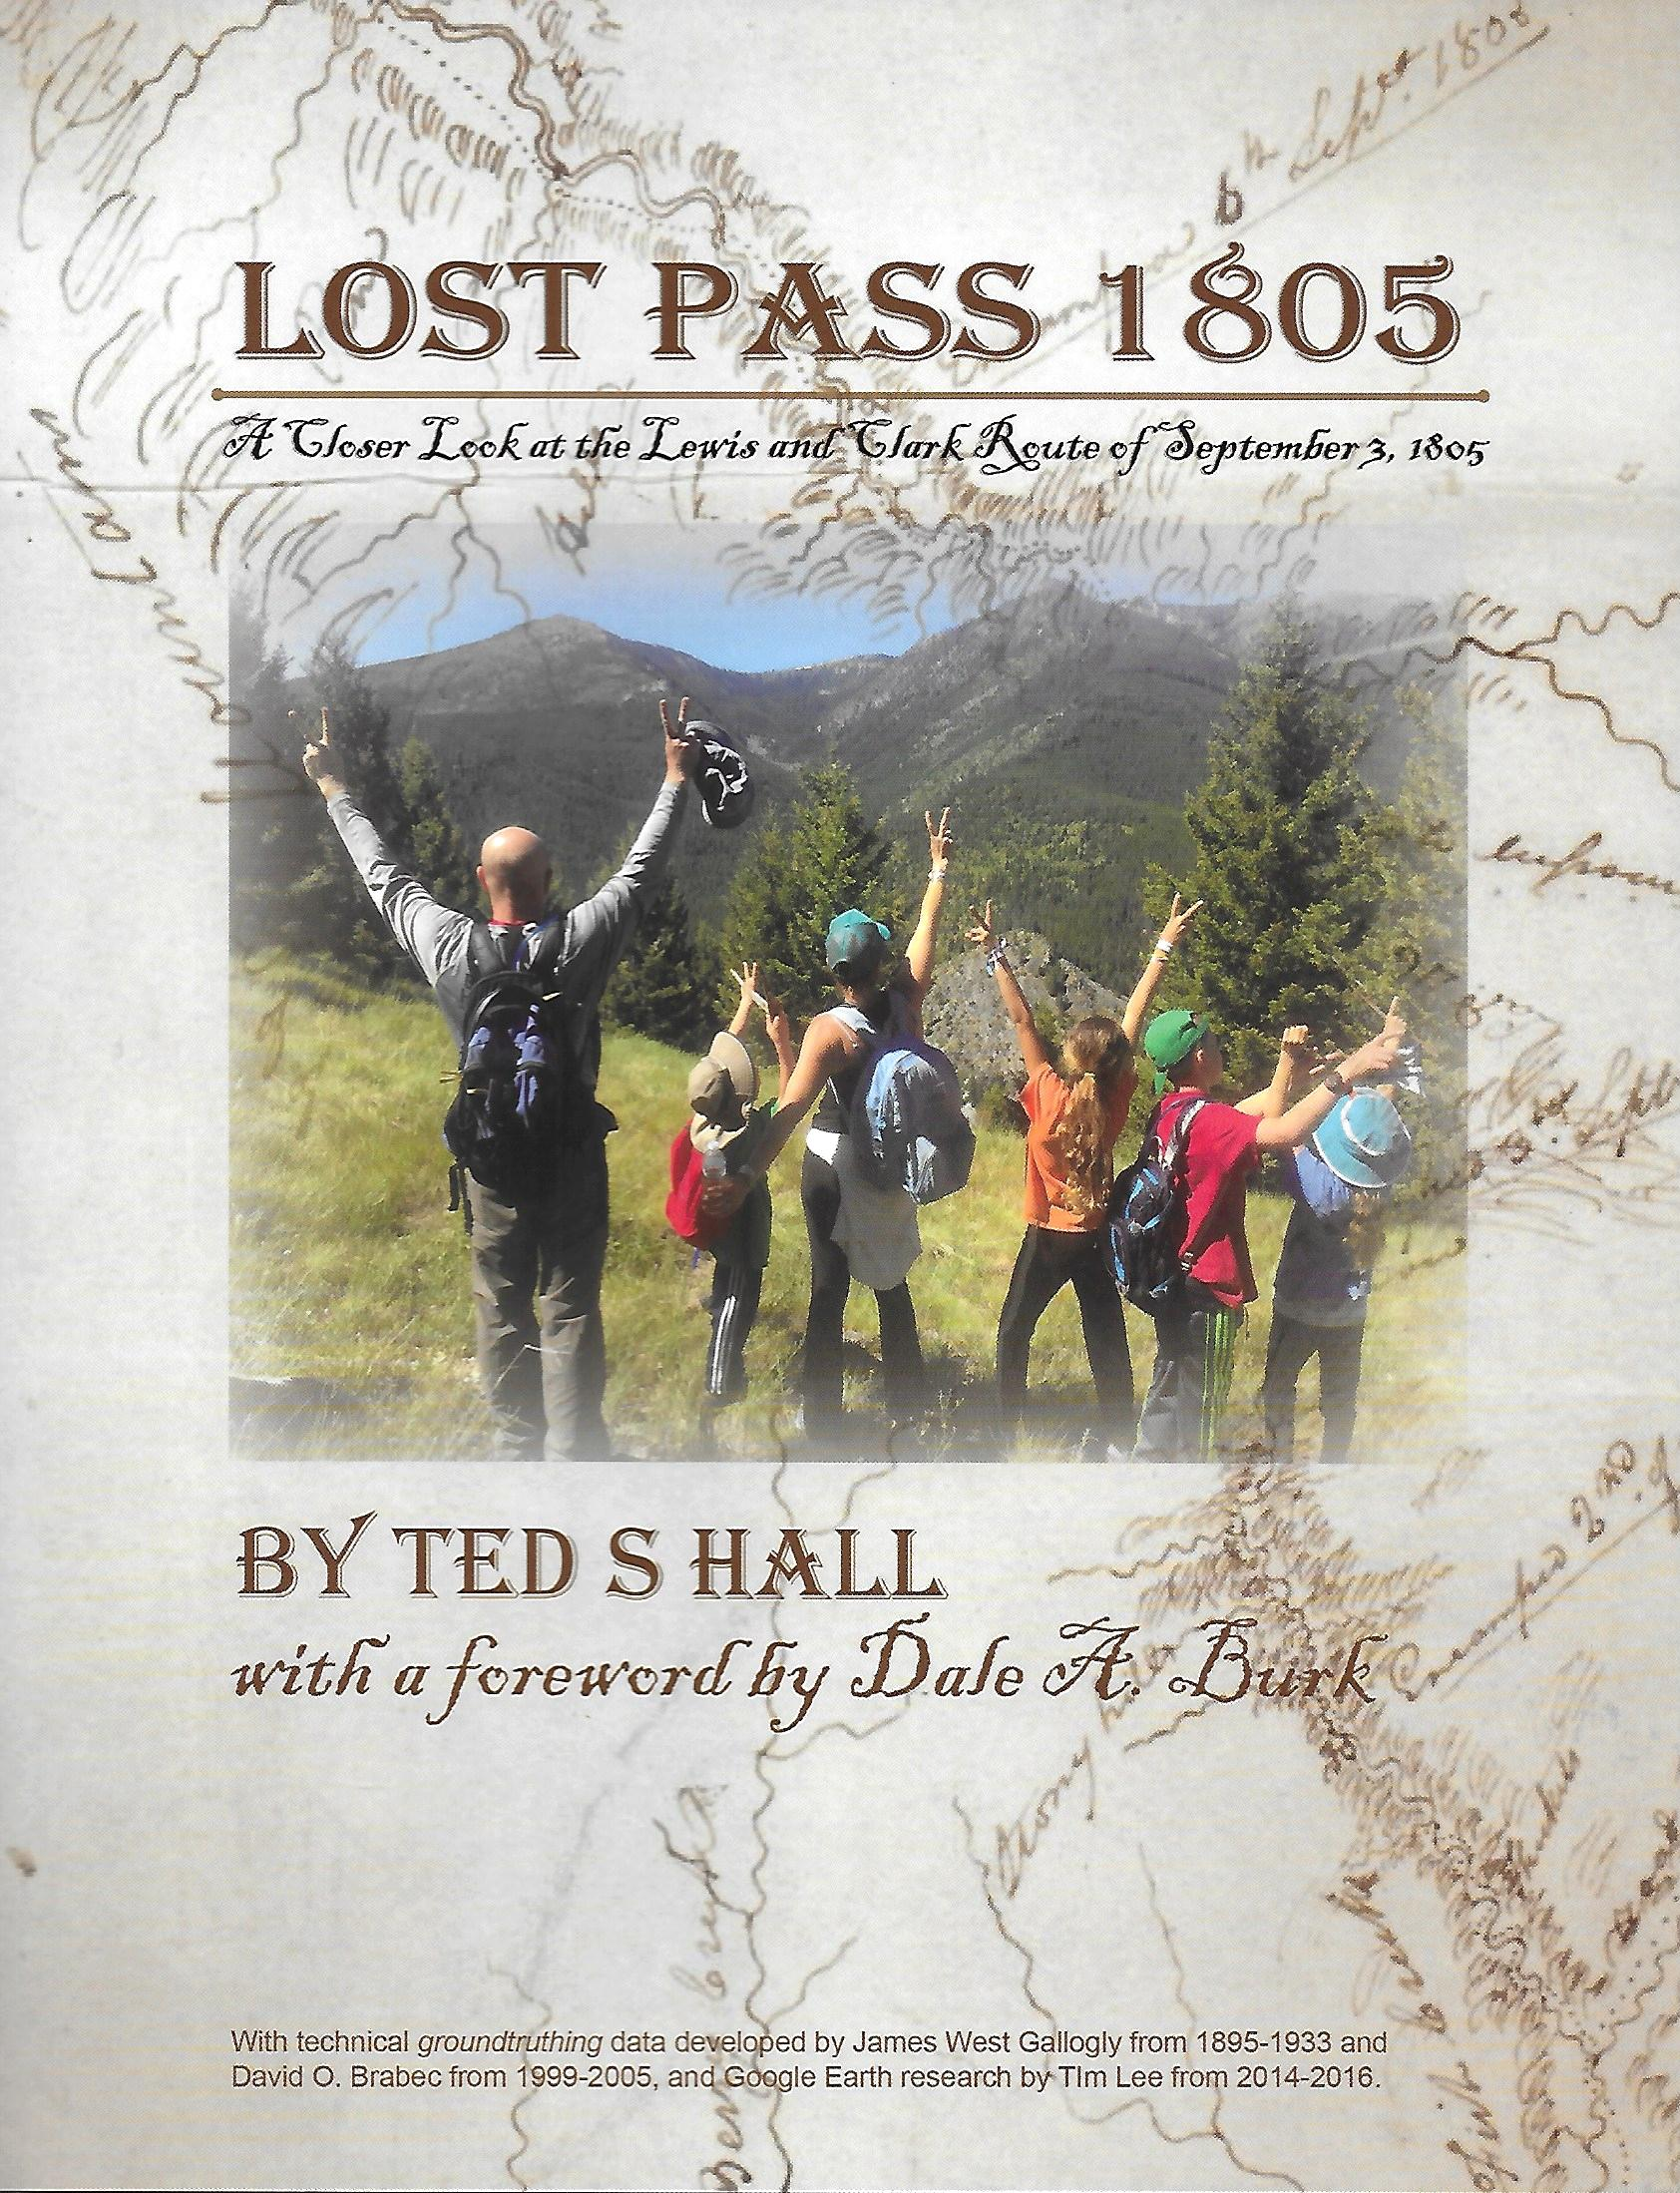 Lost Pass 1805